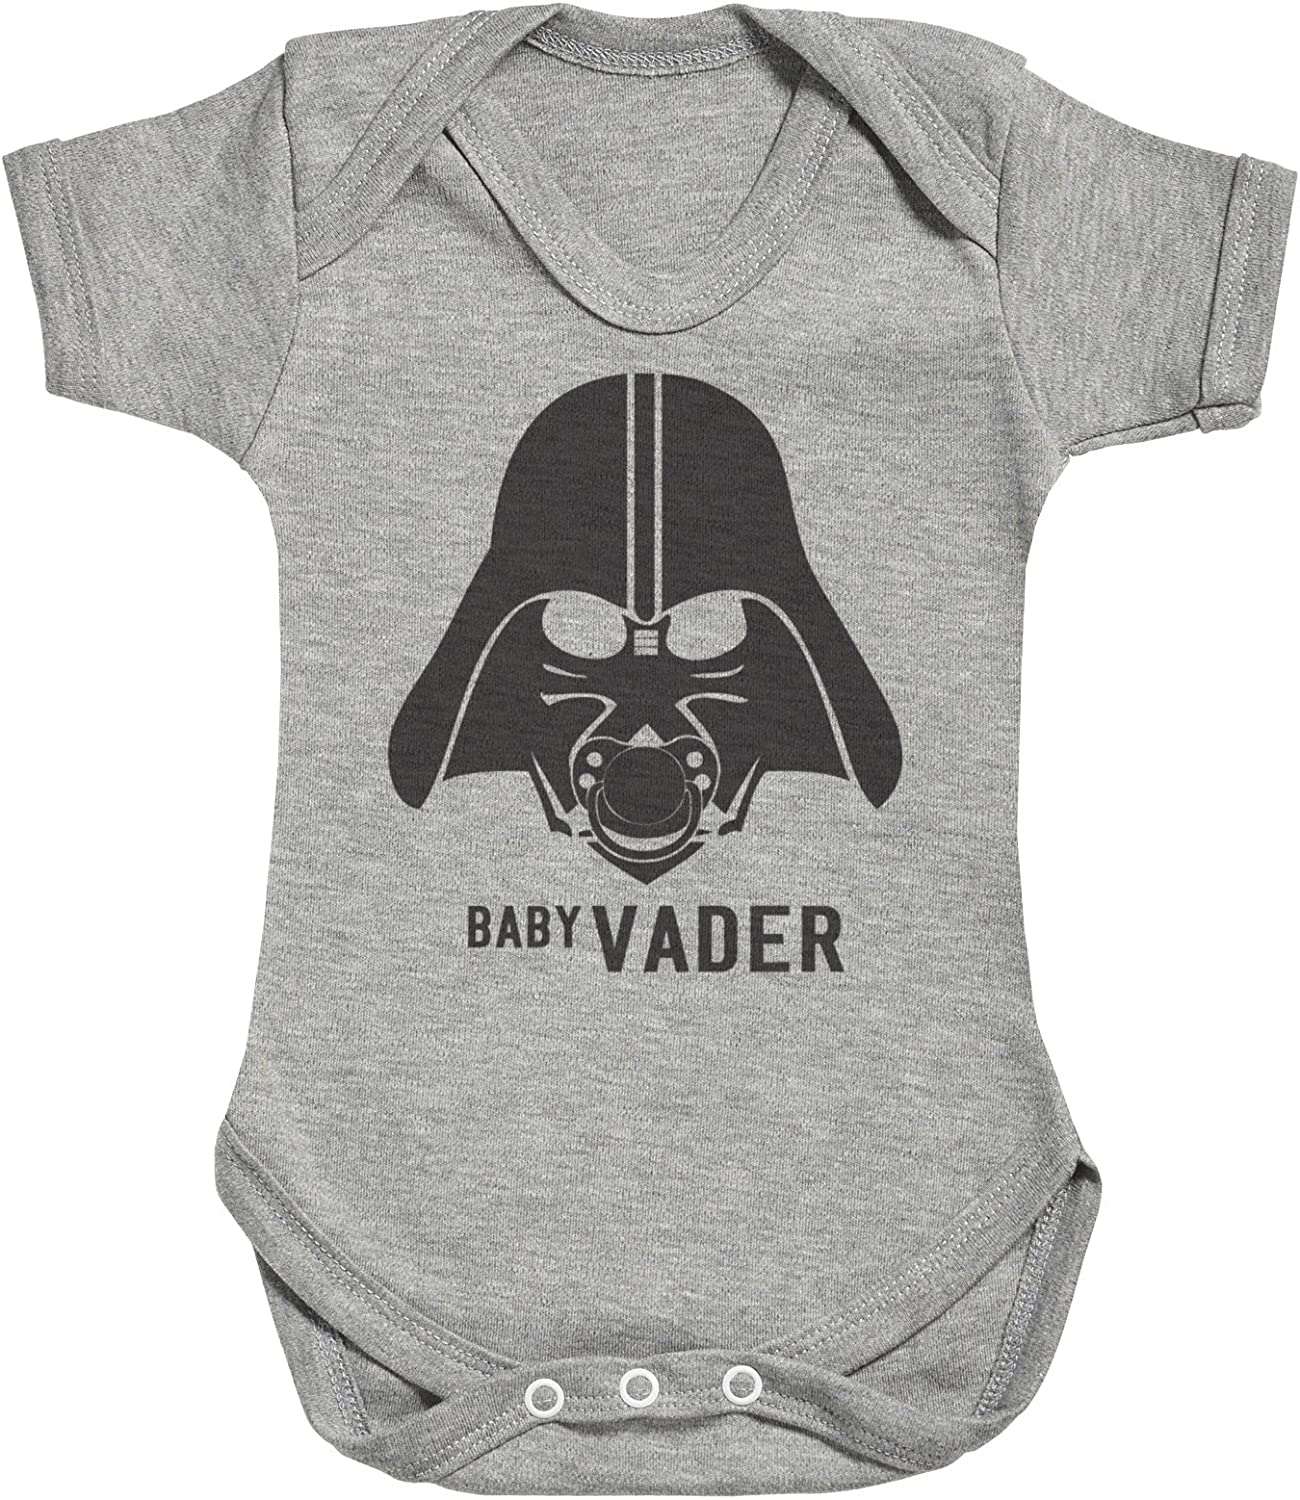 Mens T Shirt /& Baby Bodysuit Zarlivia Clothing Baby Vader /& Daddy Vader Matching Father Baby Gift Set